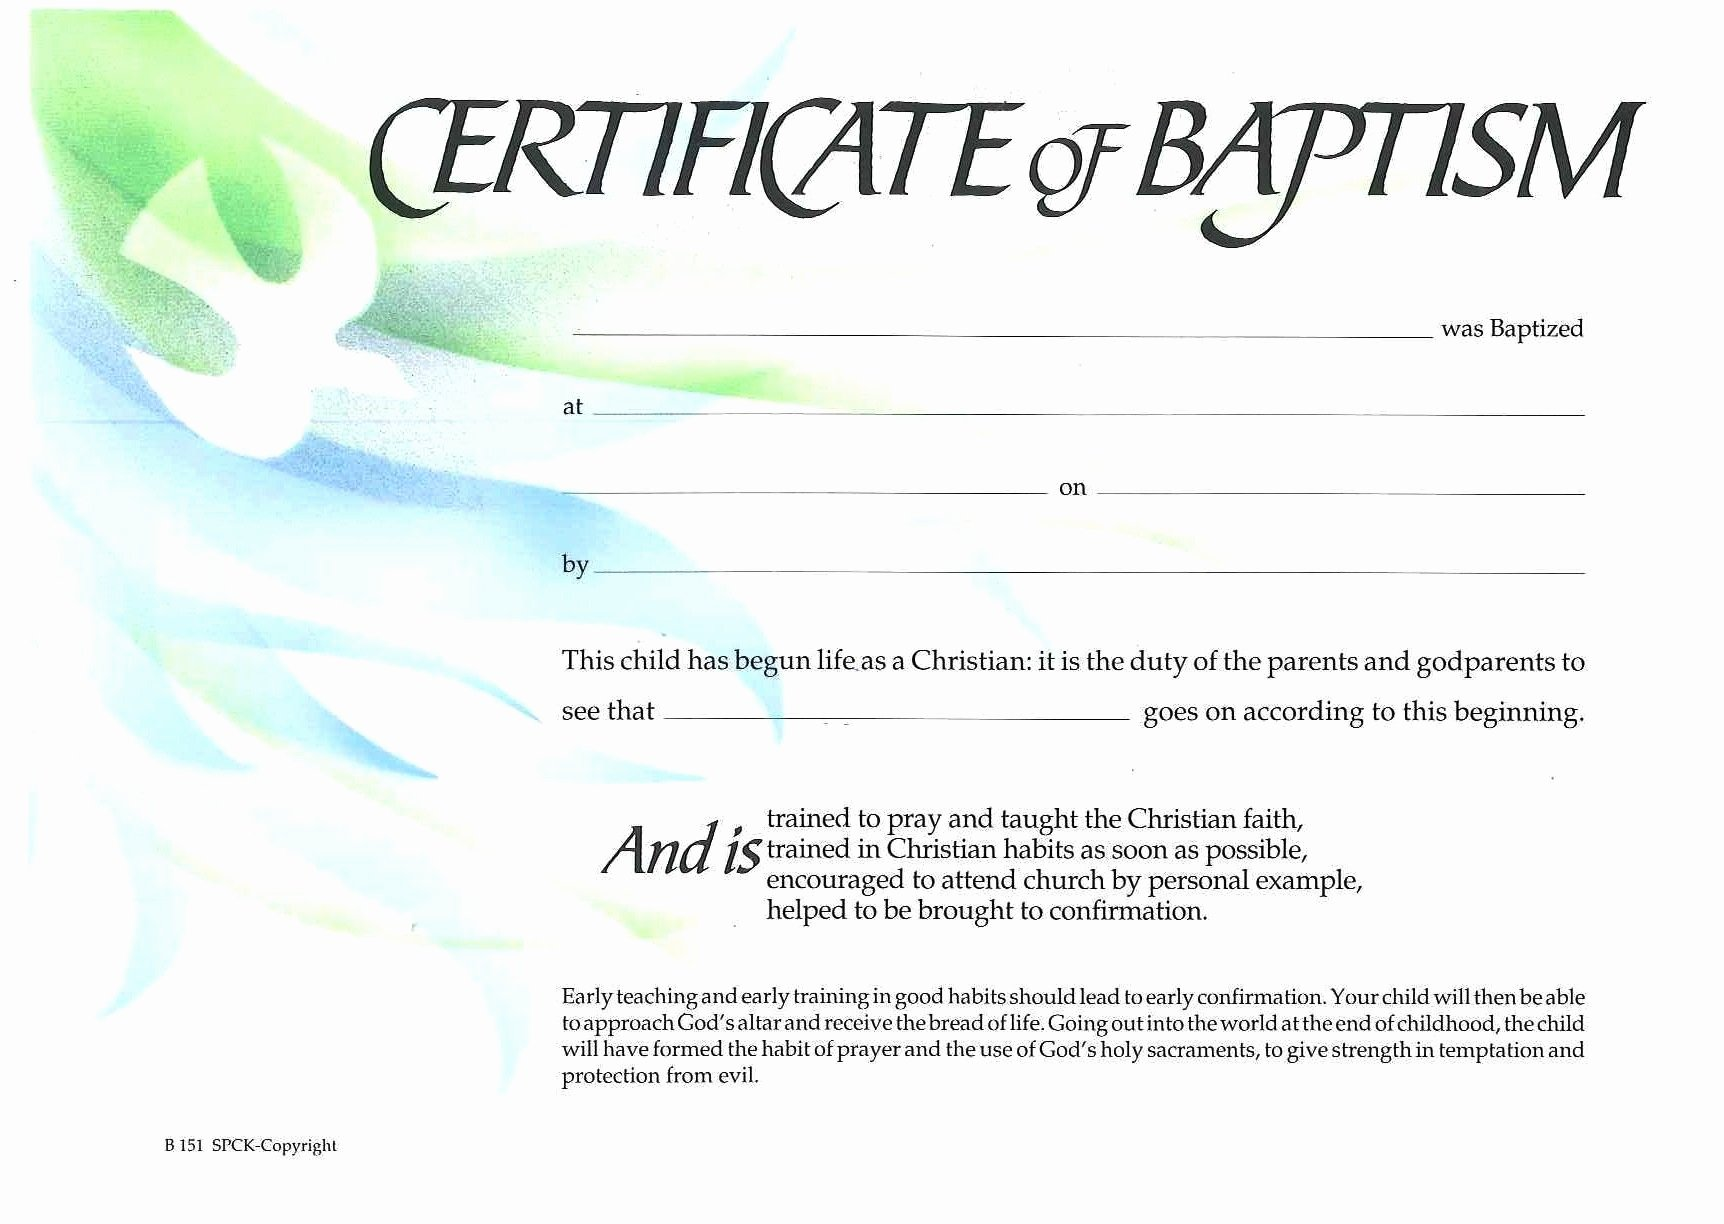 Certificate Of Baptism Template Awesome Baptism Certificate Xp4eamuz Sunday School